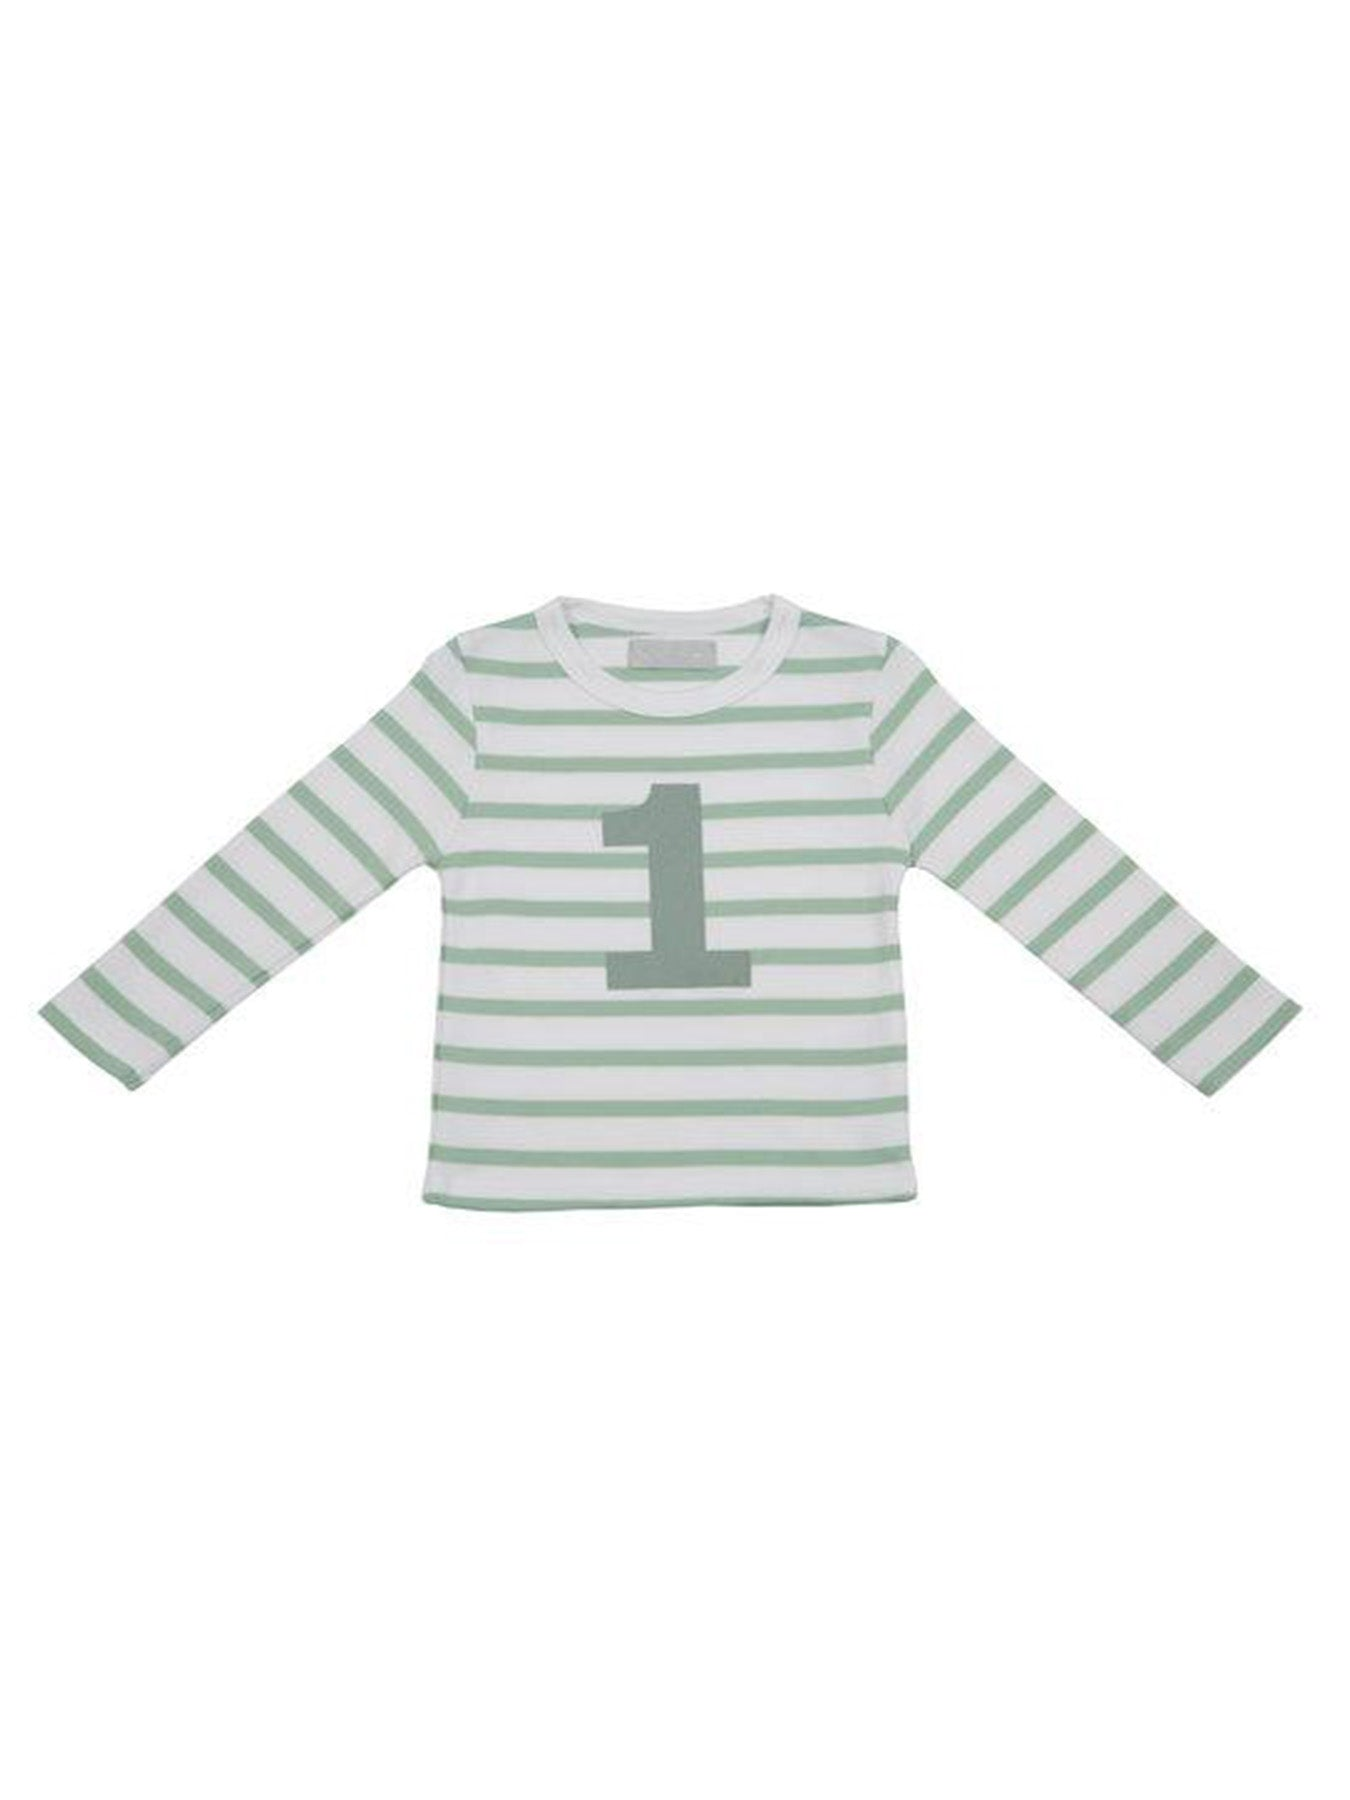 Seafoam & White Breton Striped Number T (1-2 Years)